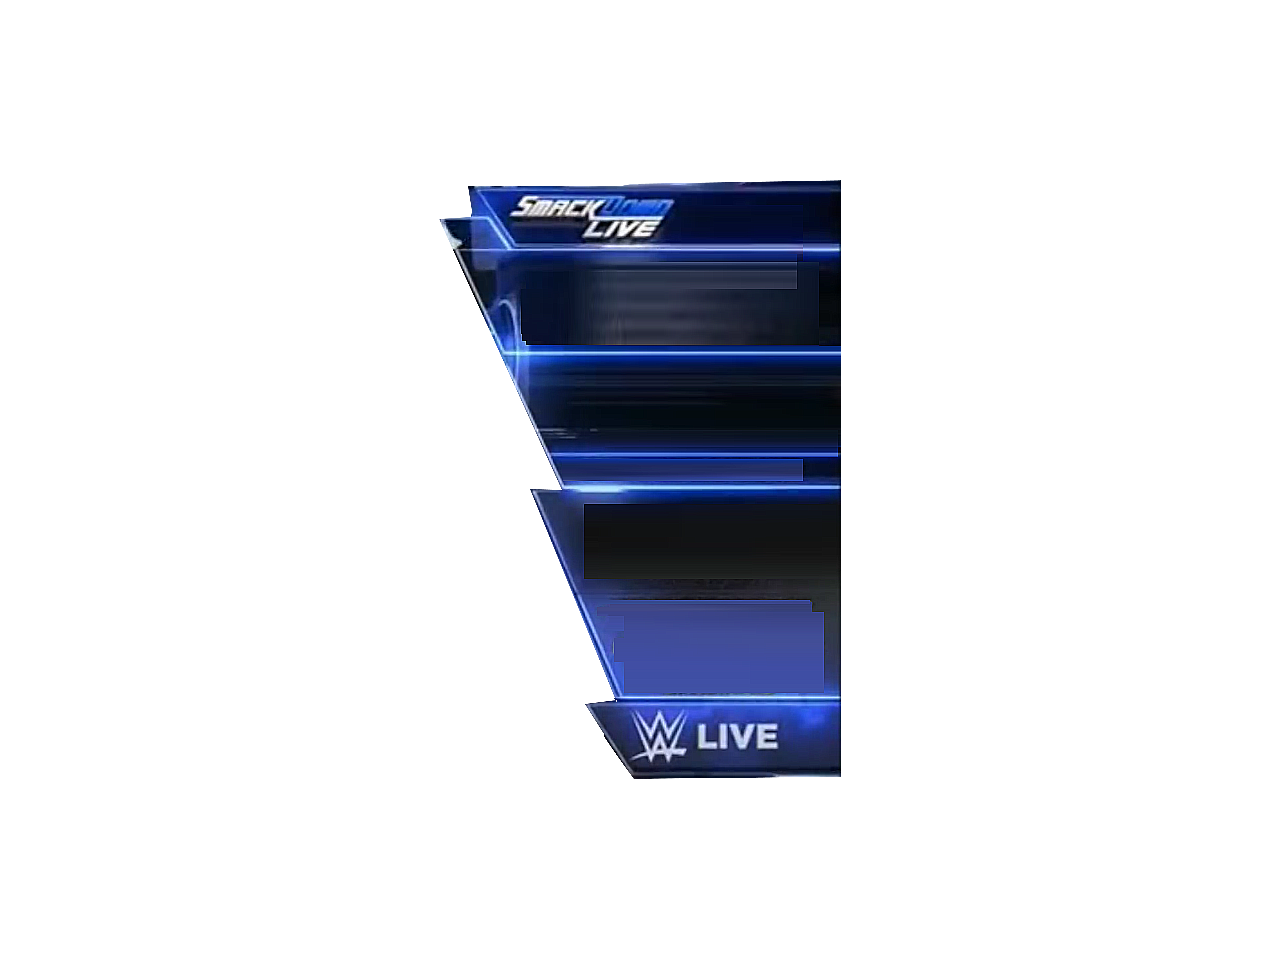 Smackdown live png. Renders backgrounds logos nameplate